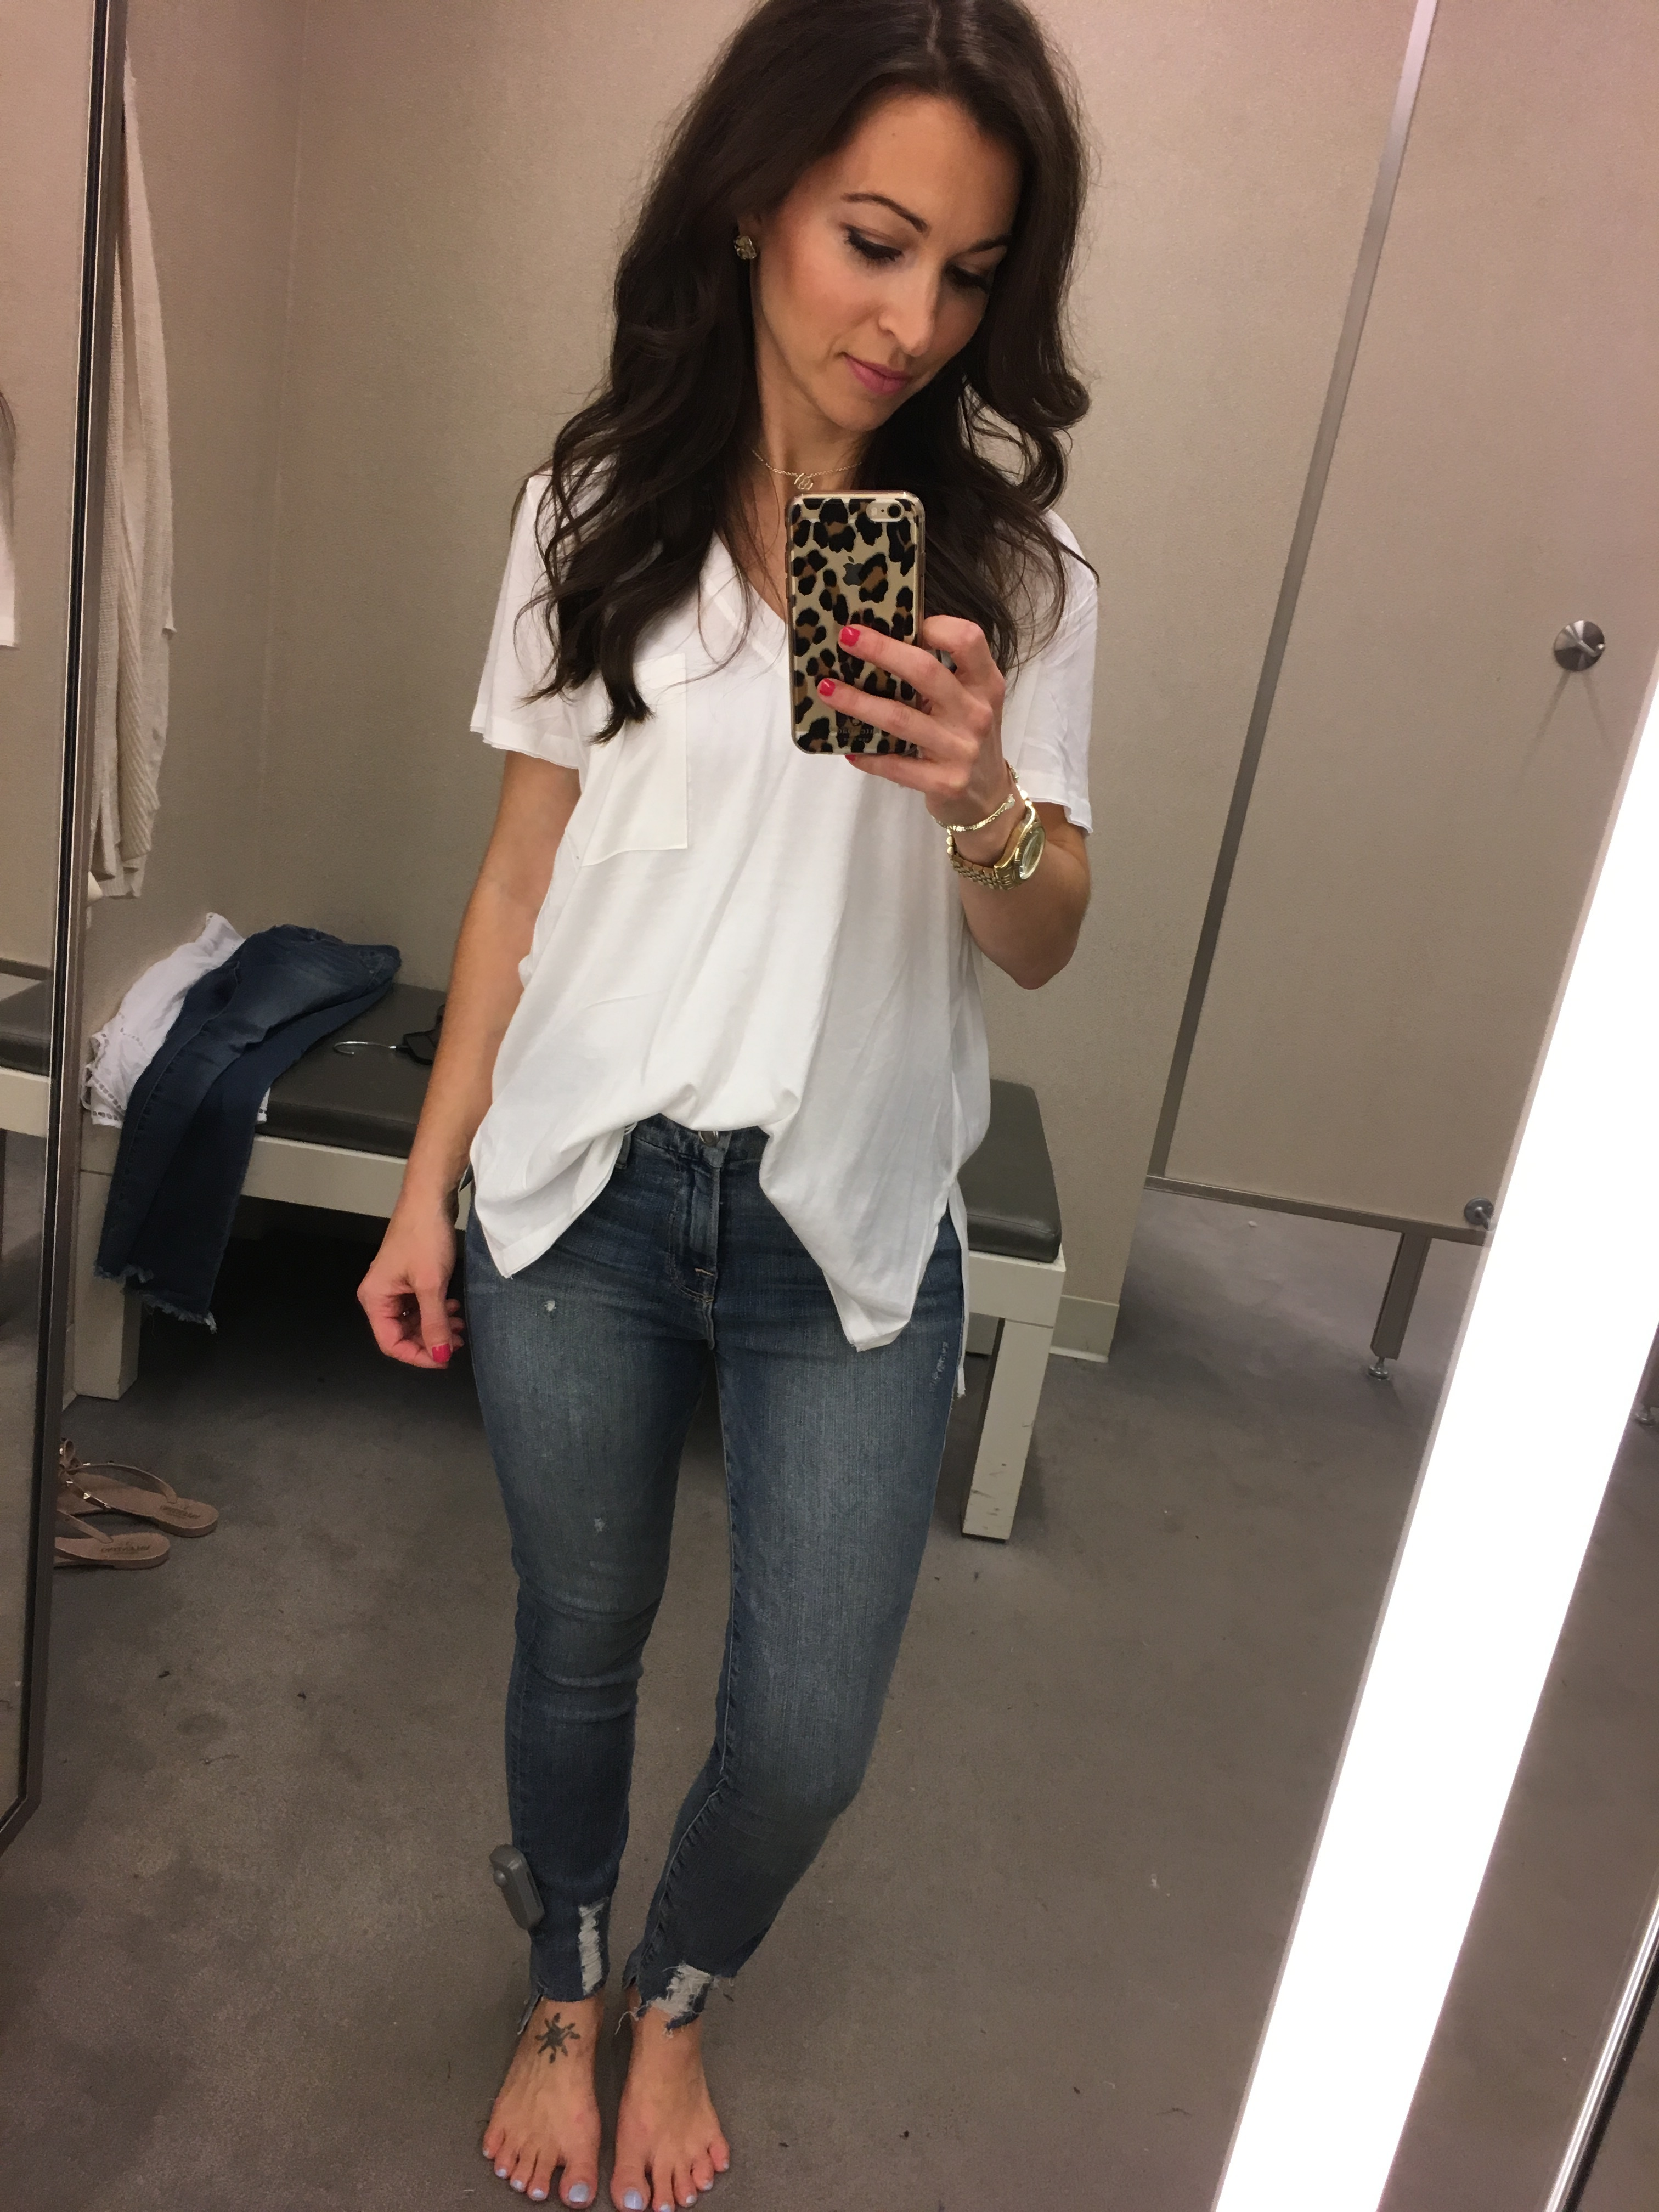 c667d5d4674 Nordstrom Anniversary sale dressing room session with Alissa Weikel of  Lipgloss   Labels